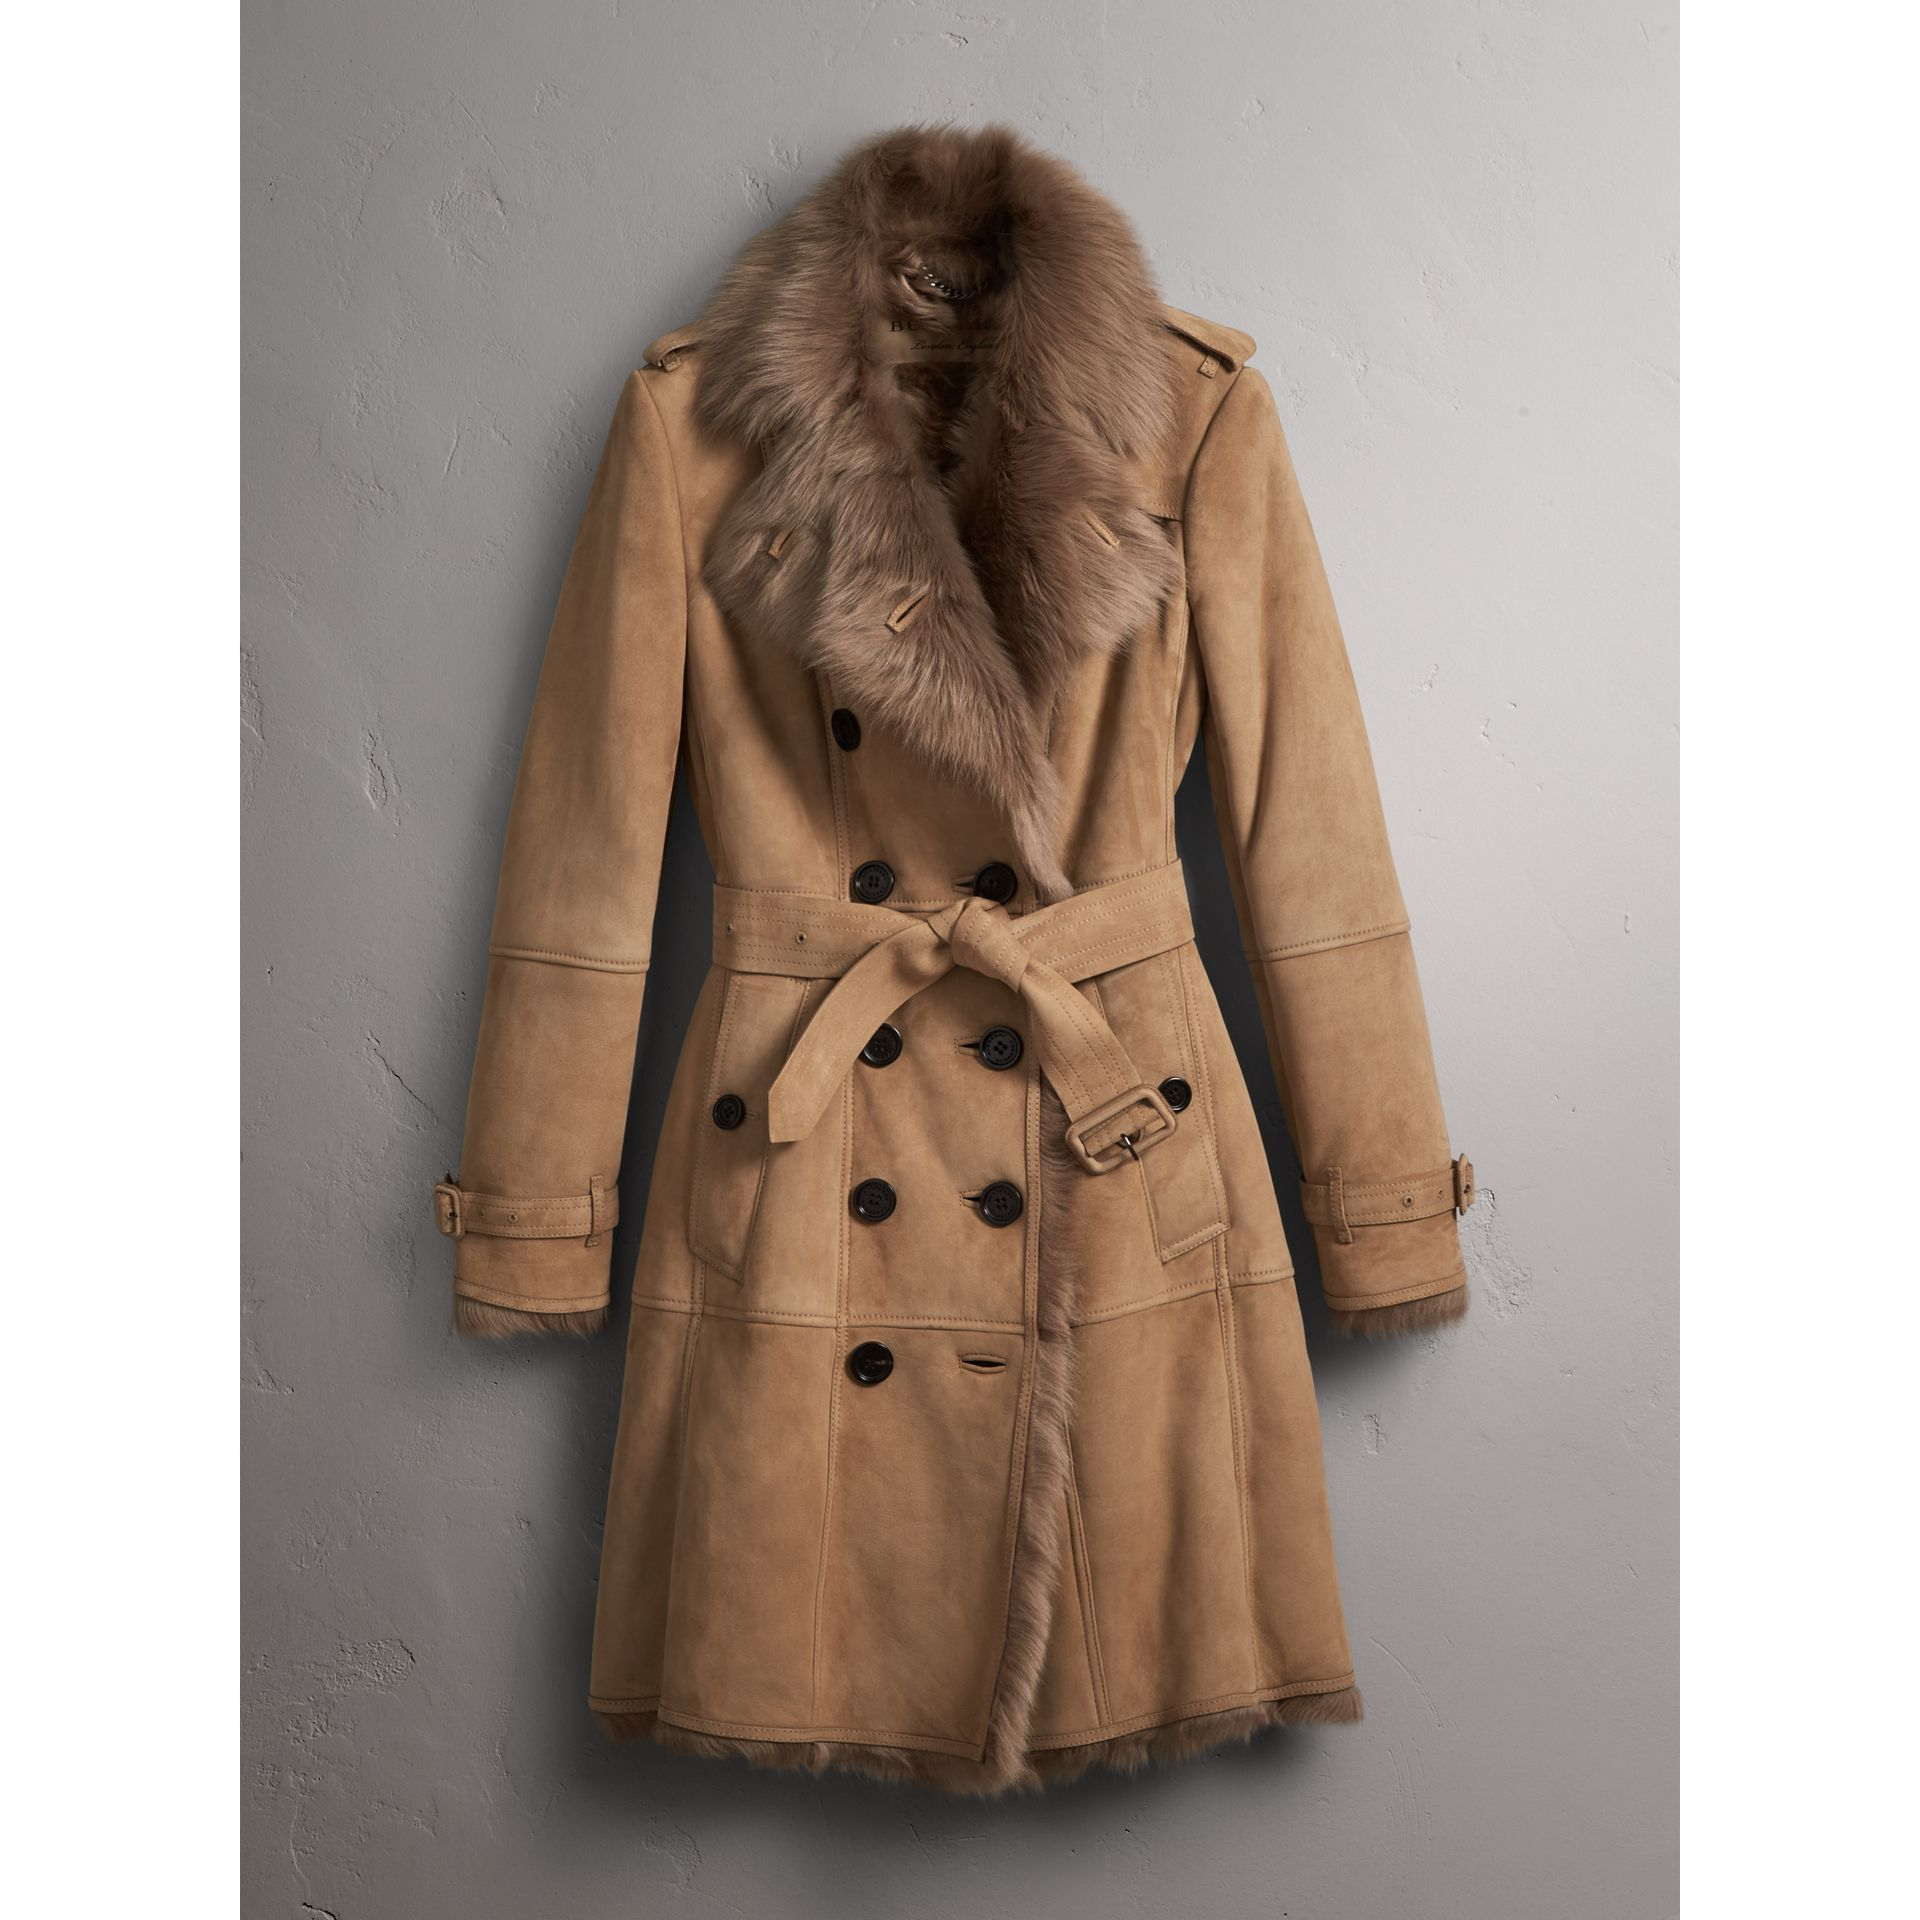 Shearling Trench Coat in Camel - Women | Burberry - gallery image 4